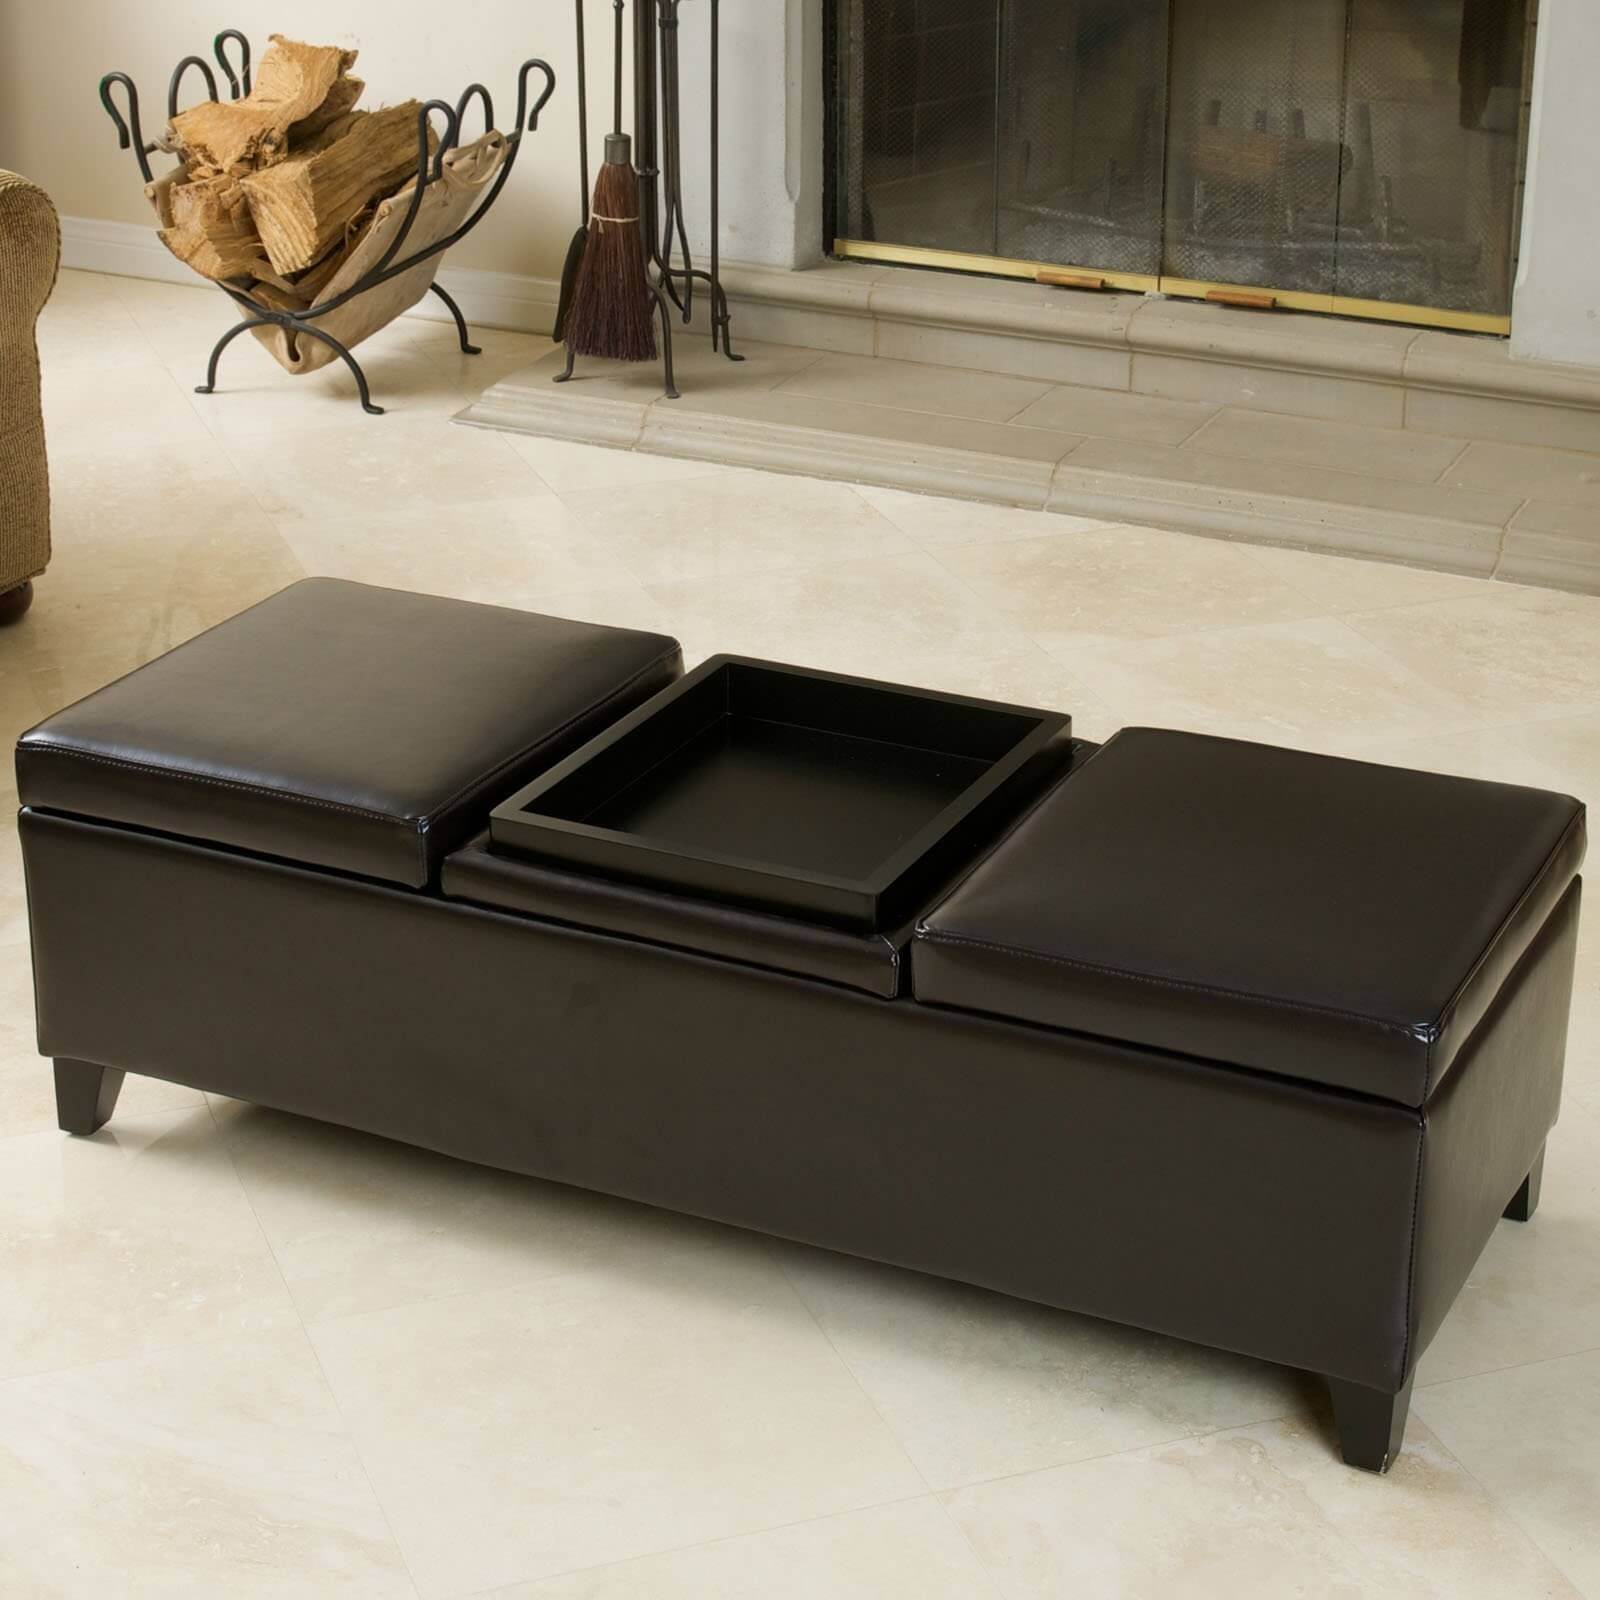 Furniture Stunning Brown Leather Ottoman Coffee Table Rectangular Shape Specially Design With 2 Side Surface